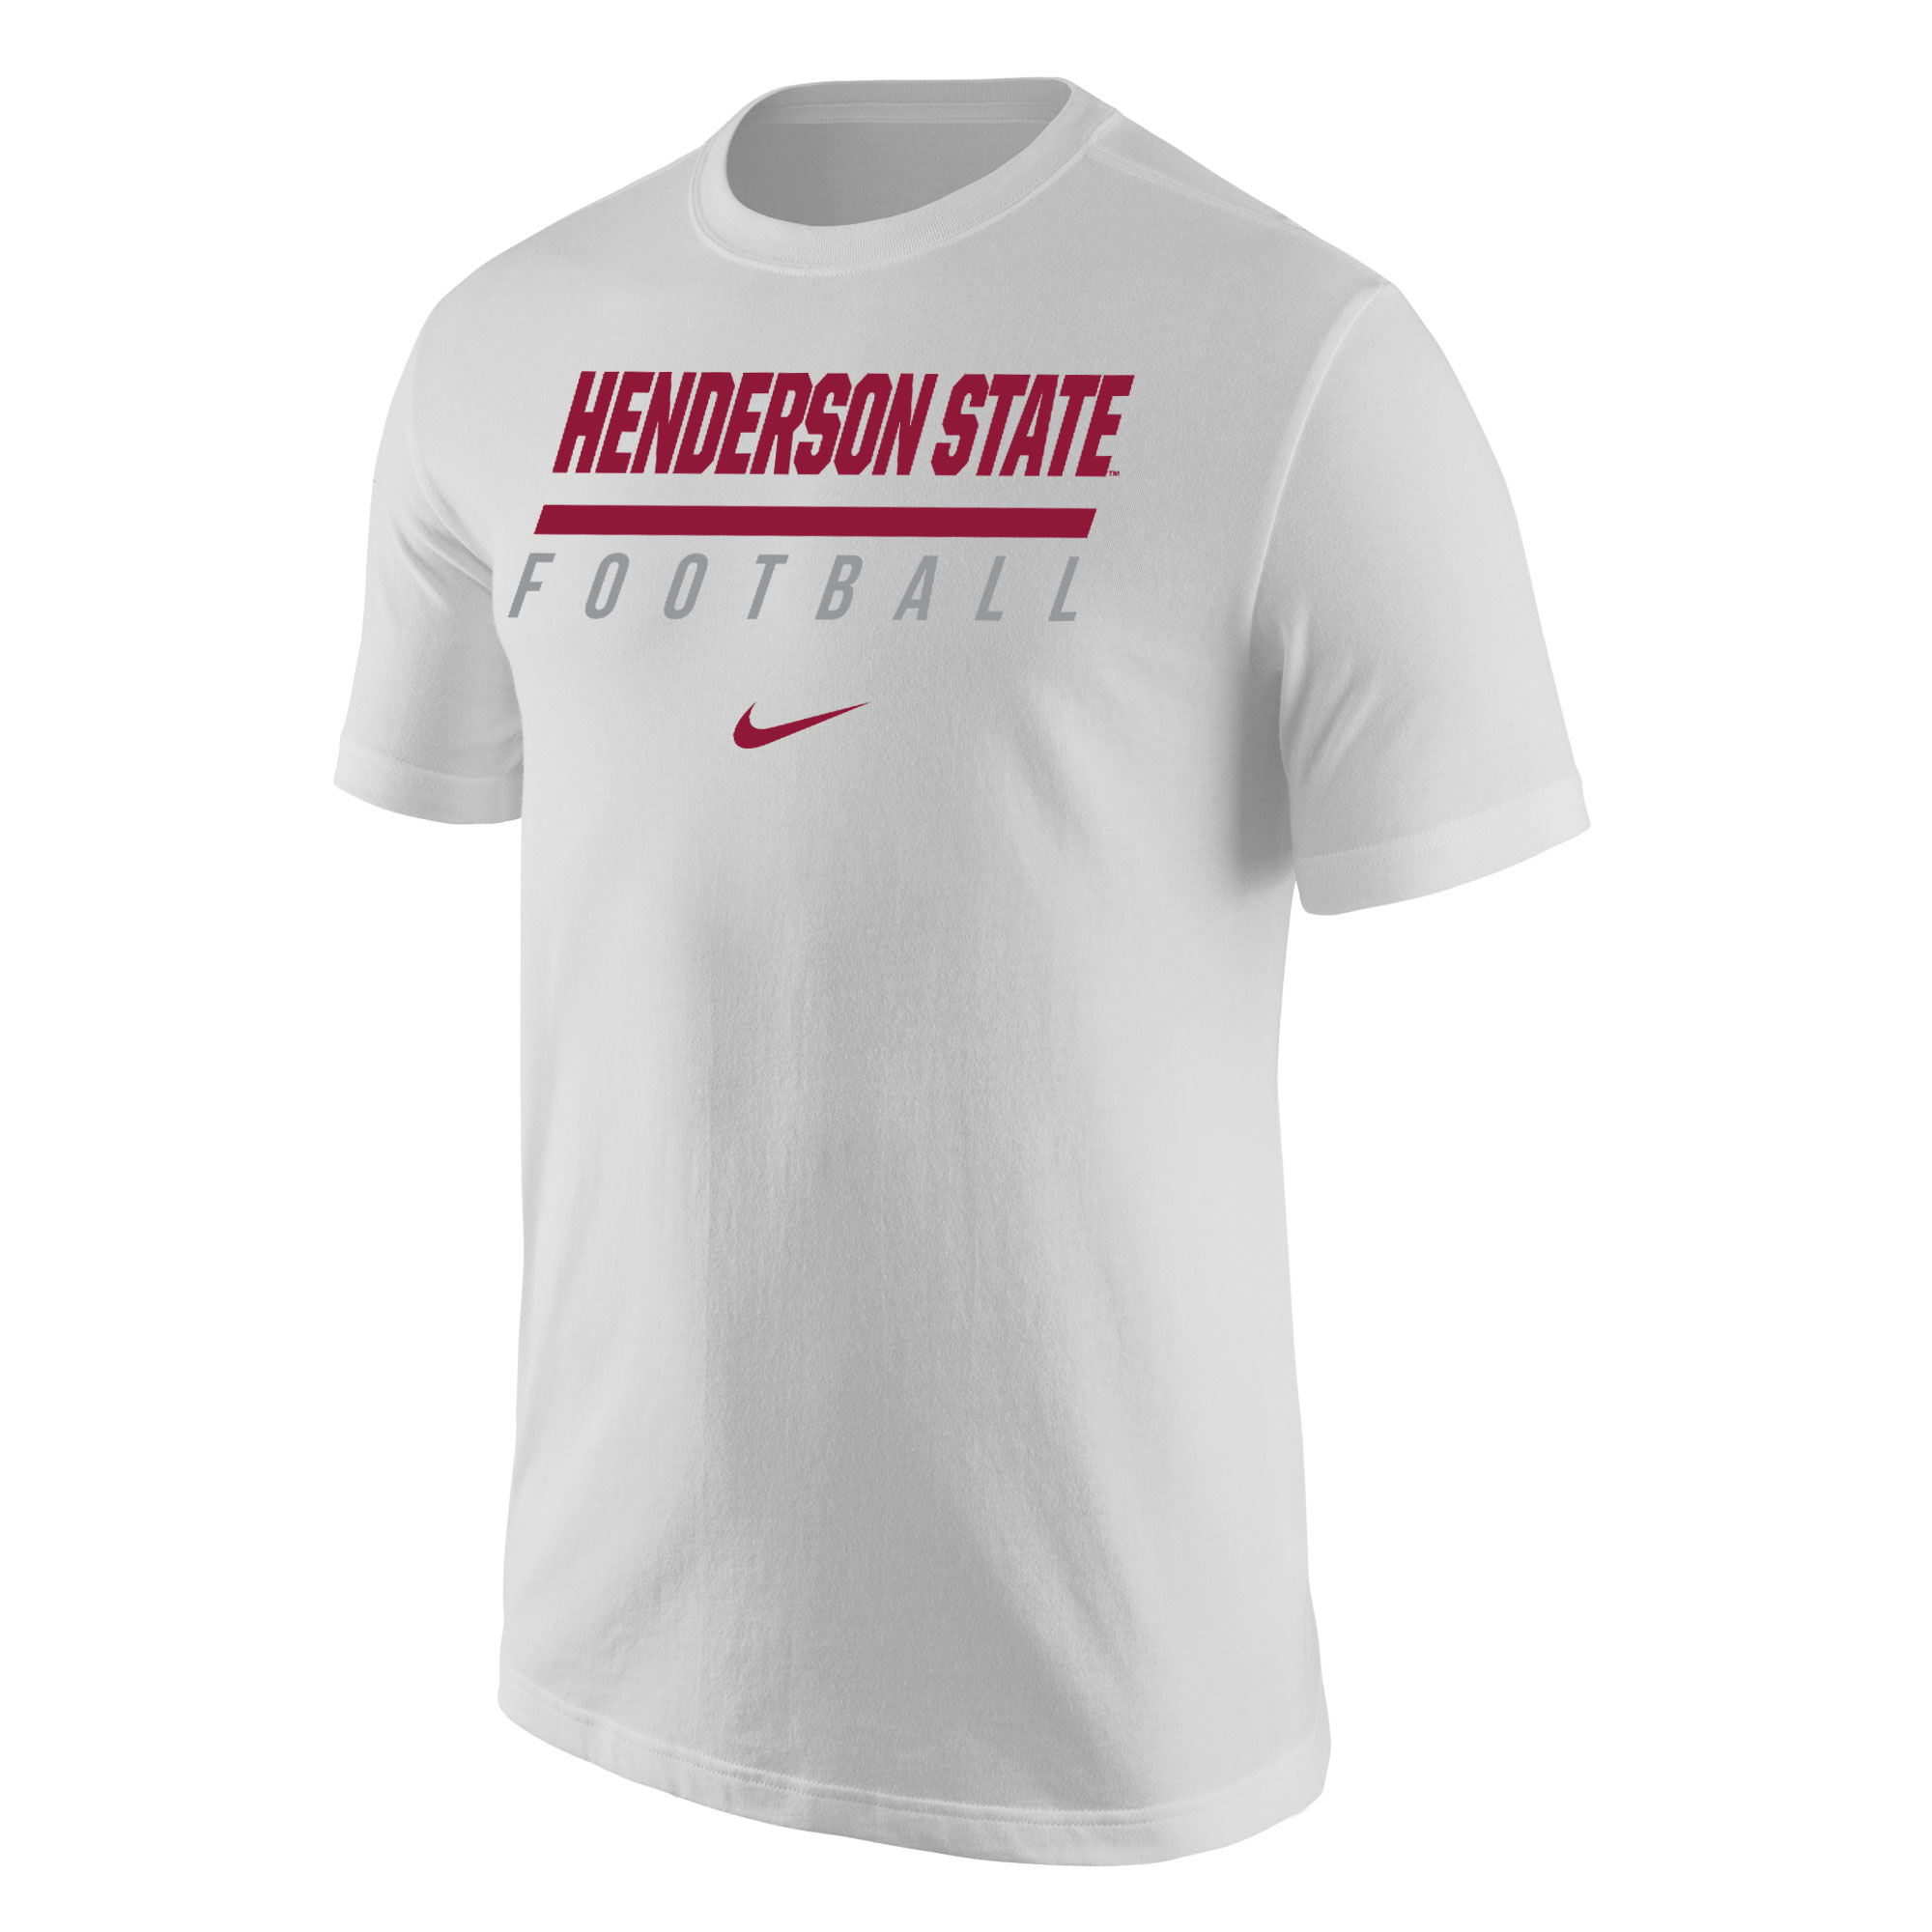 Henderson State Football Nike Short Sleeve T-Shirt